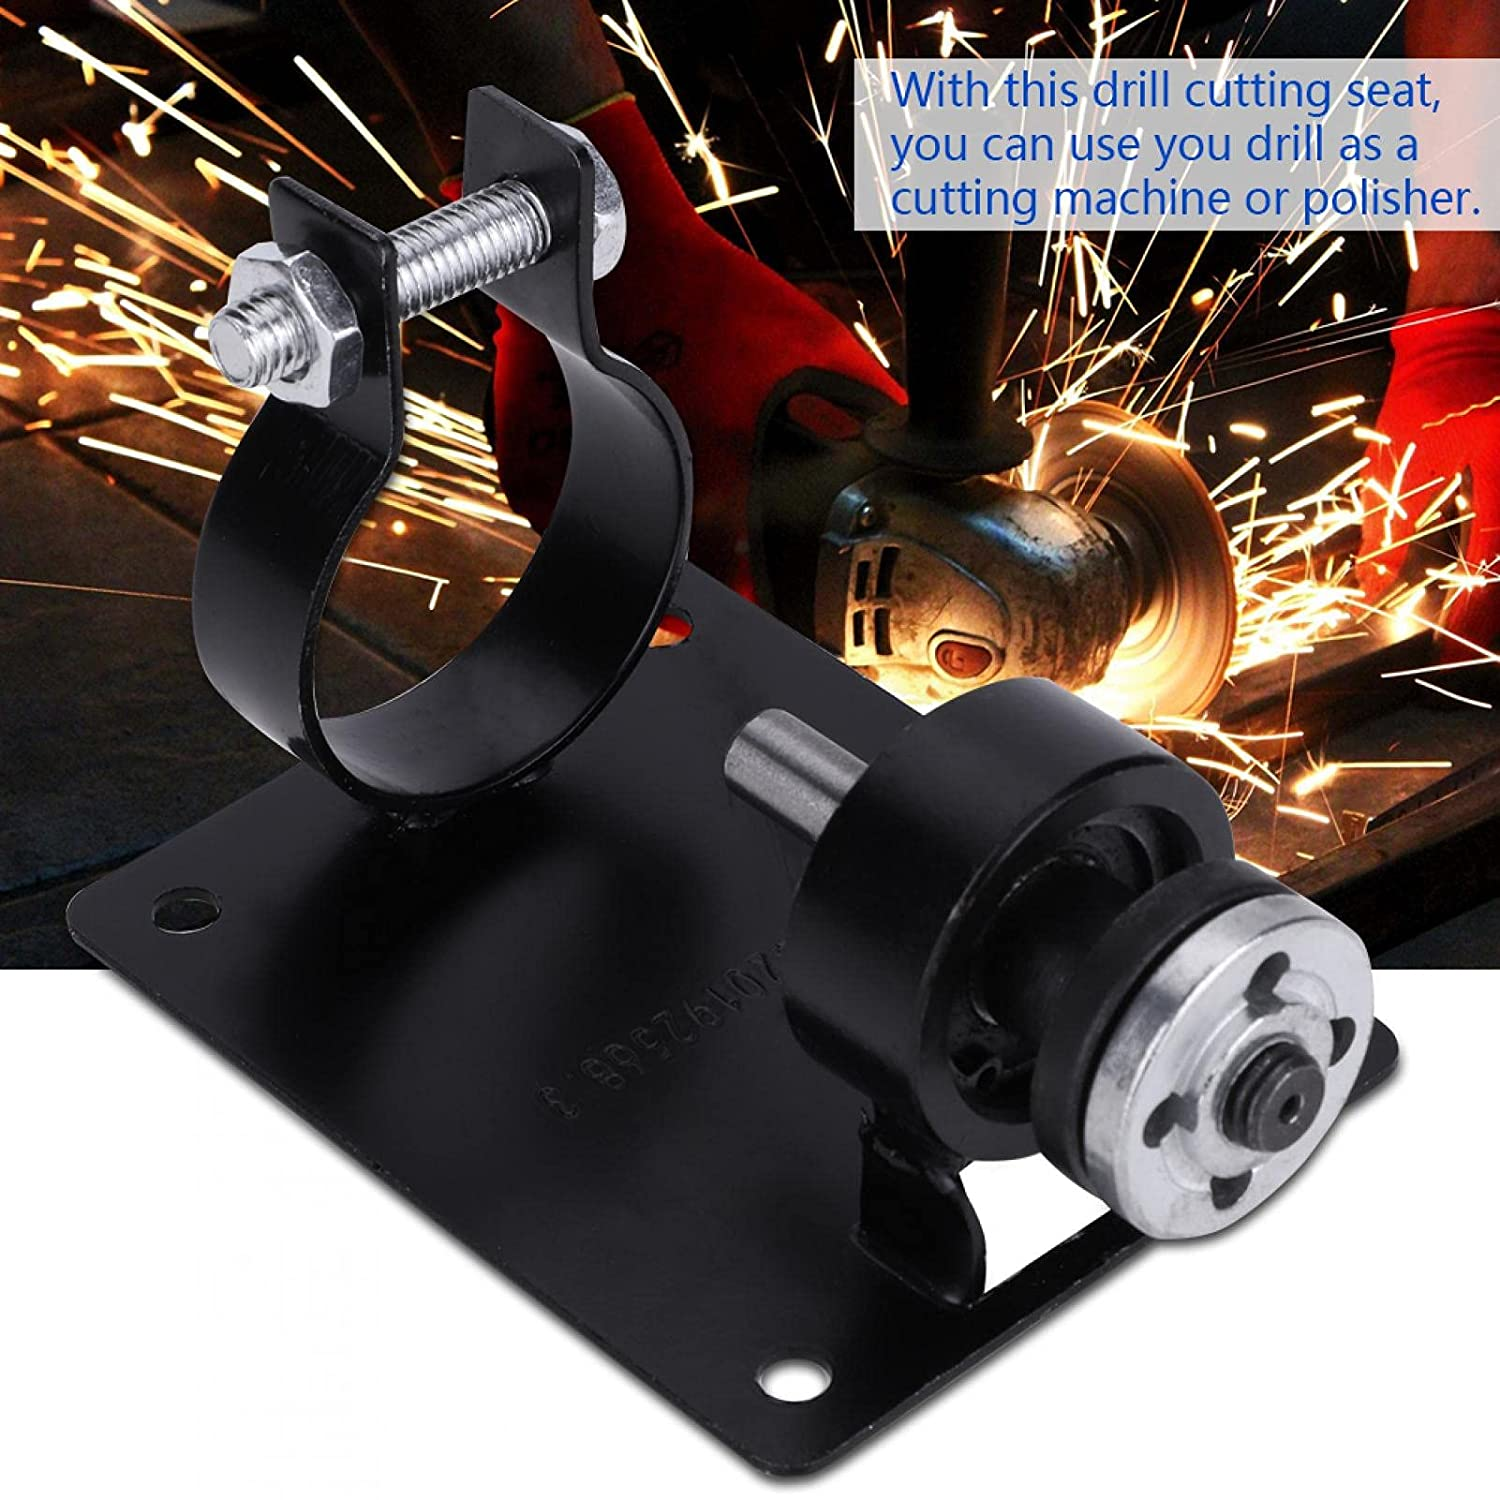 Drill Cutting Bracket New wholesale product Convenient Profession Seat